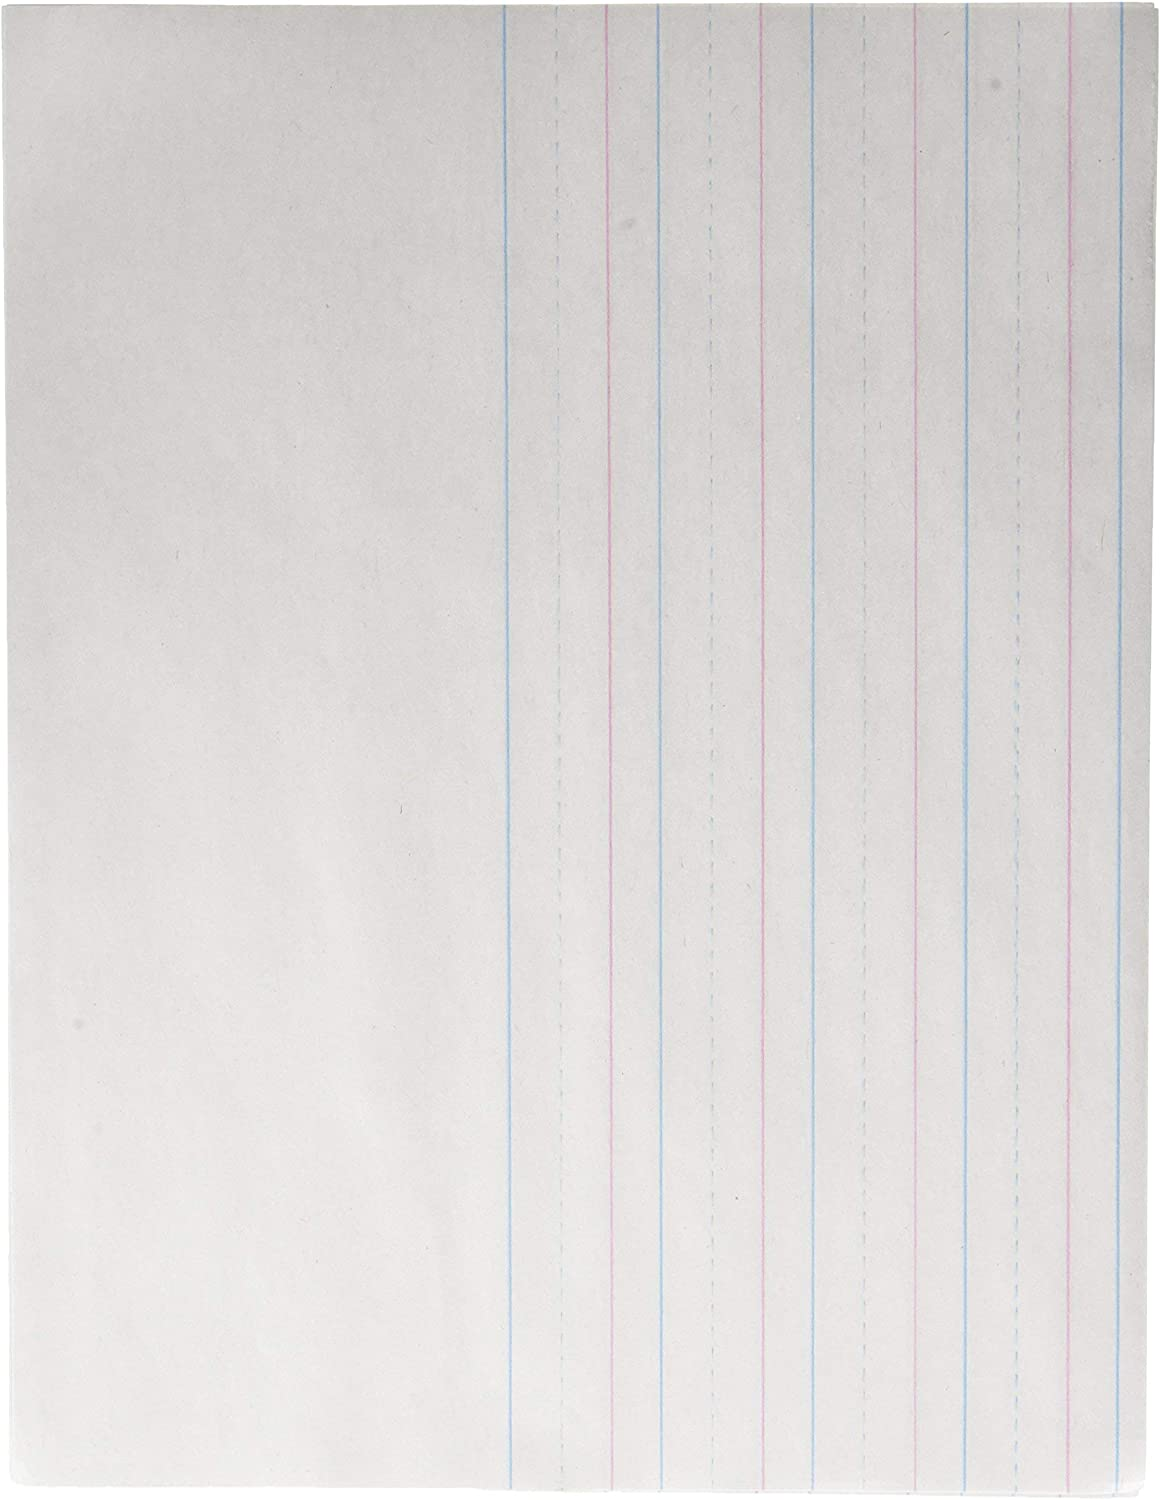 School Smart - 85320 Red & Blue Storybook Paper, 3/4 Inch Ruled Long Way, 11 x 8-1/2 Inches, 500 Sheets : Health & Household